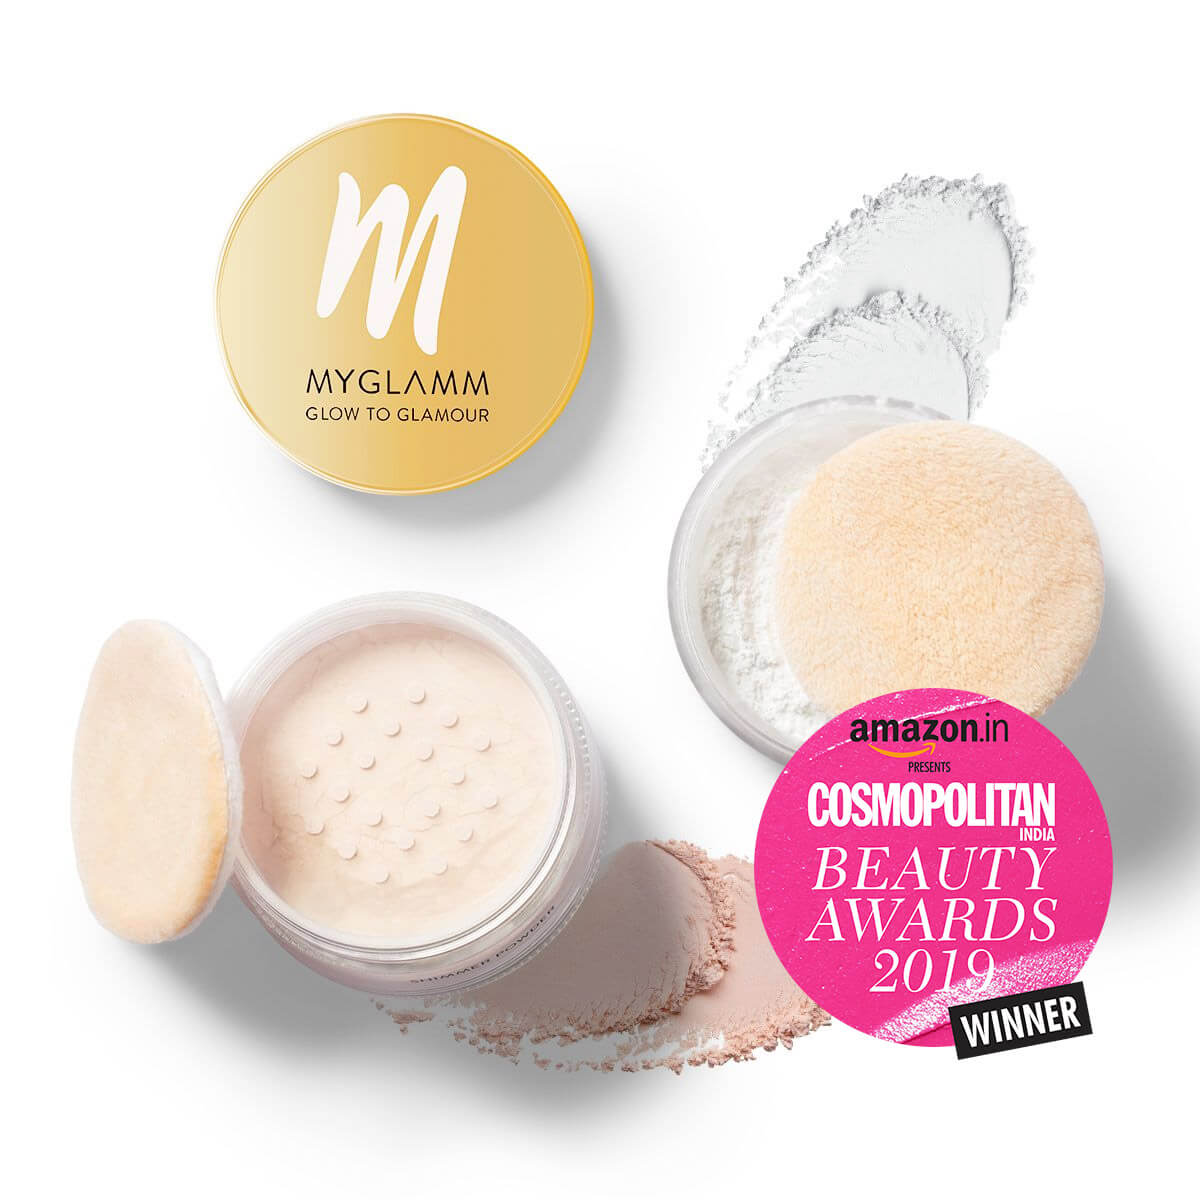 Shimmer Face Powder - Glow to Glamour